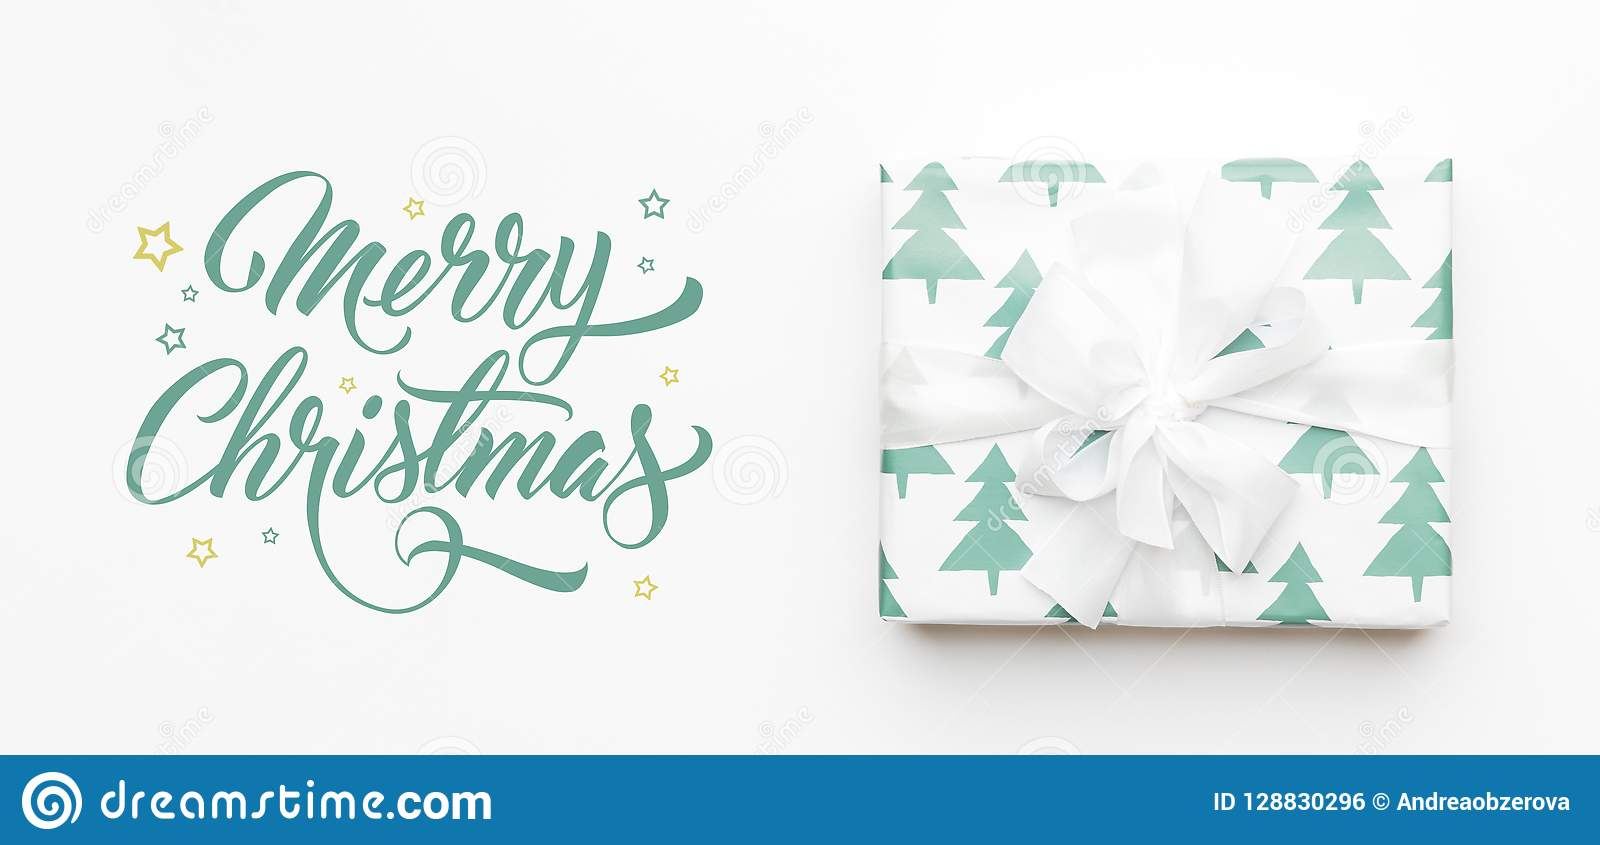 Christmas banner. Beautiful christmas gift isolated on white background. Turquoise colored wrapped xmas box. Gift wrapping.